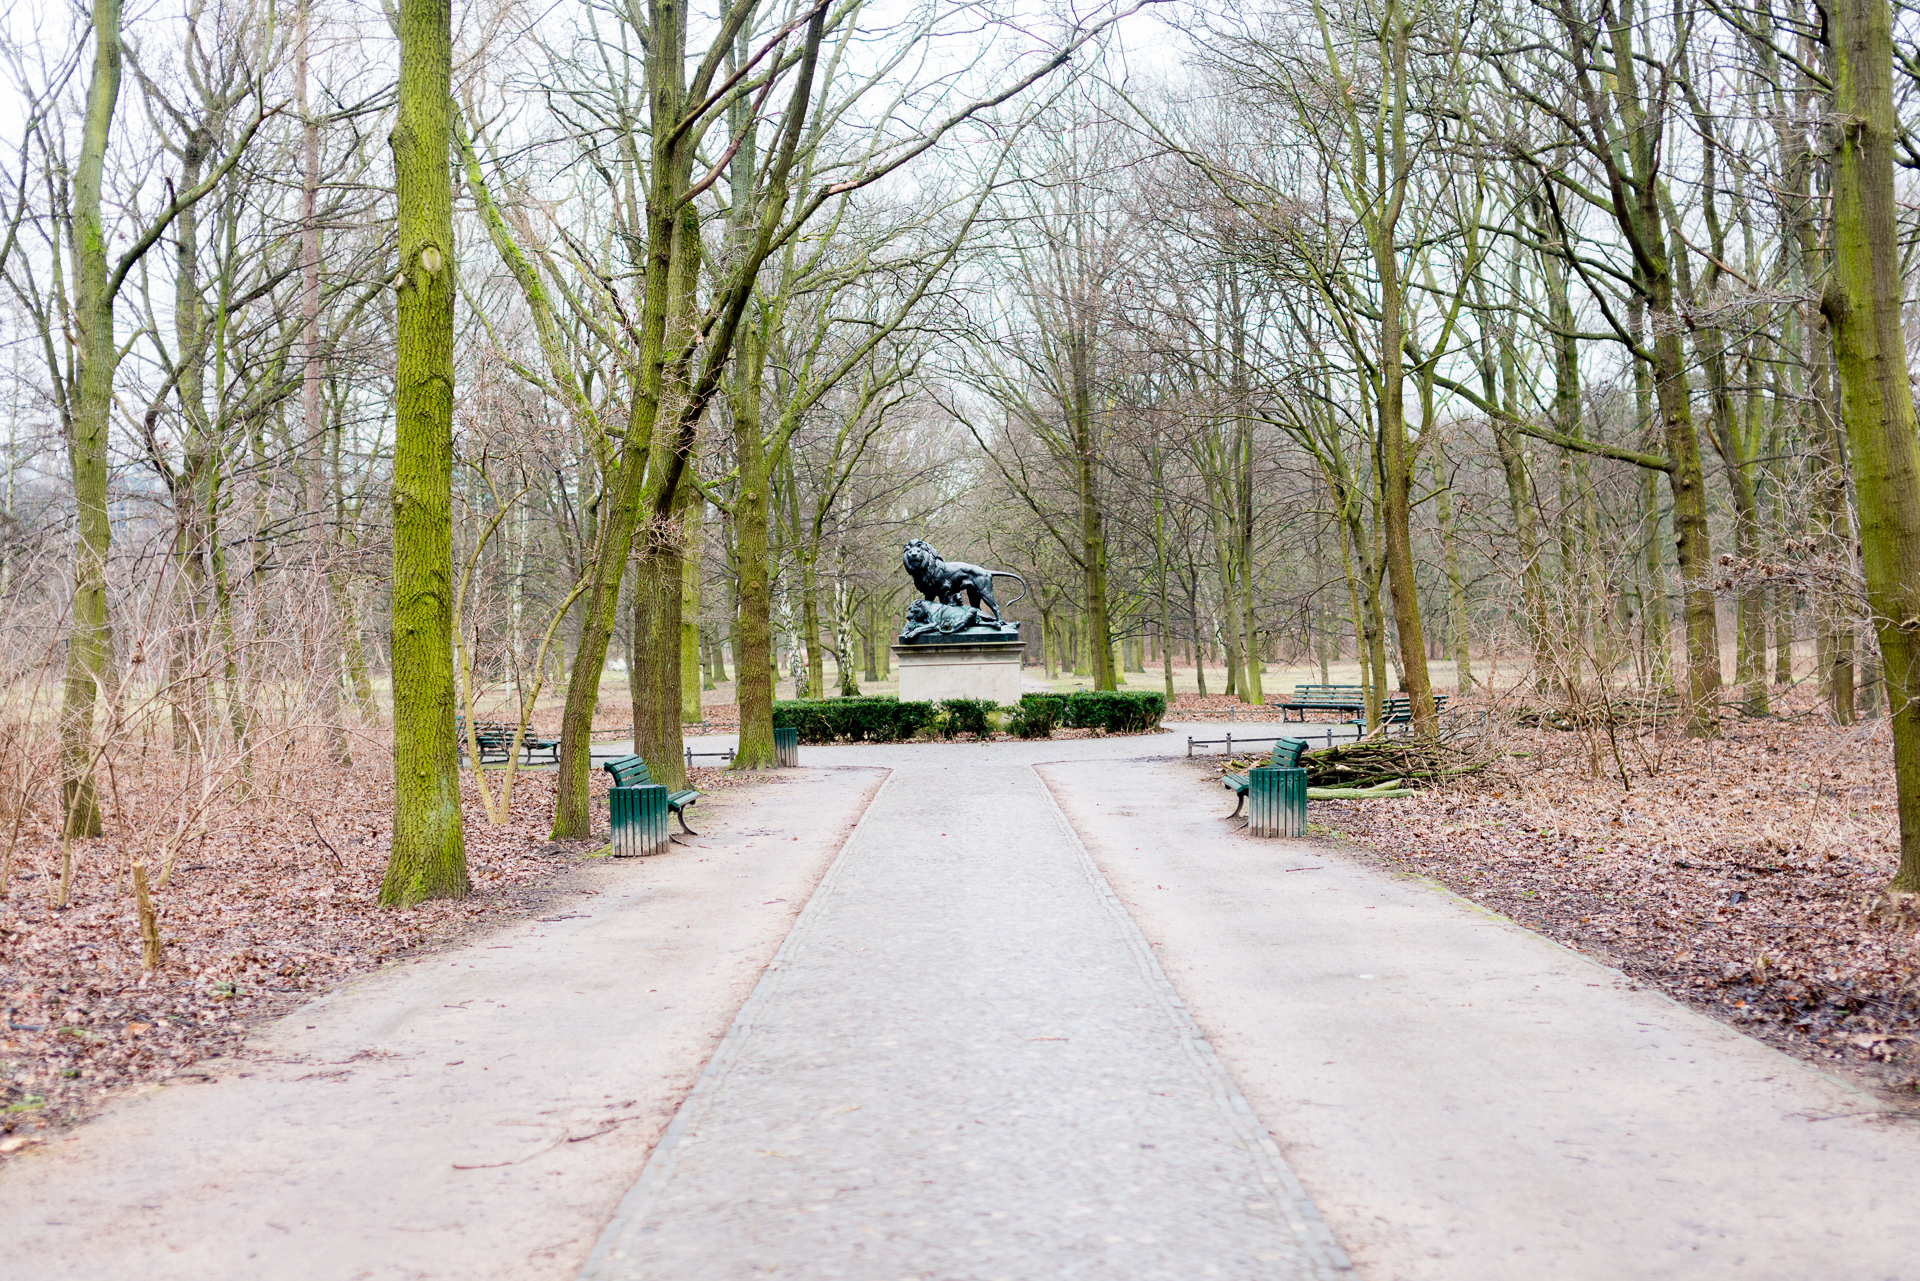 Walking path surrounded by trees that leads to a lion monument in Berlin, Germany's Tiergarten Park